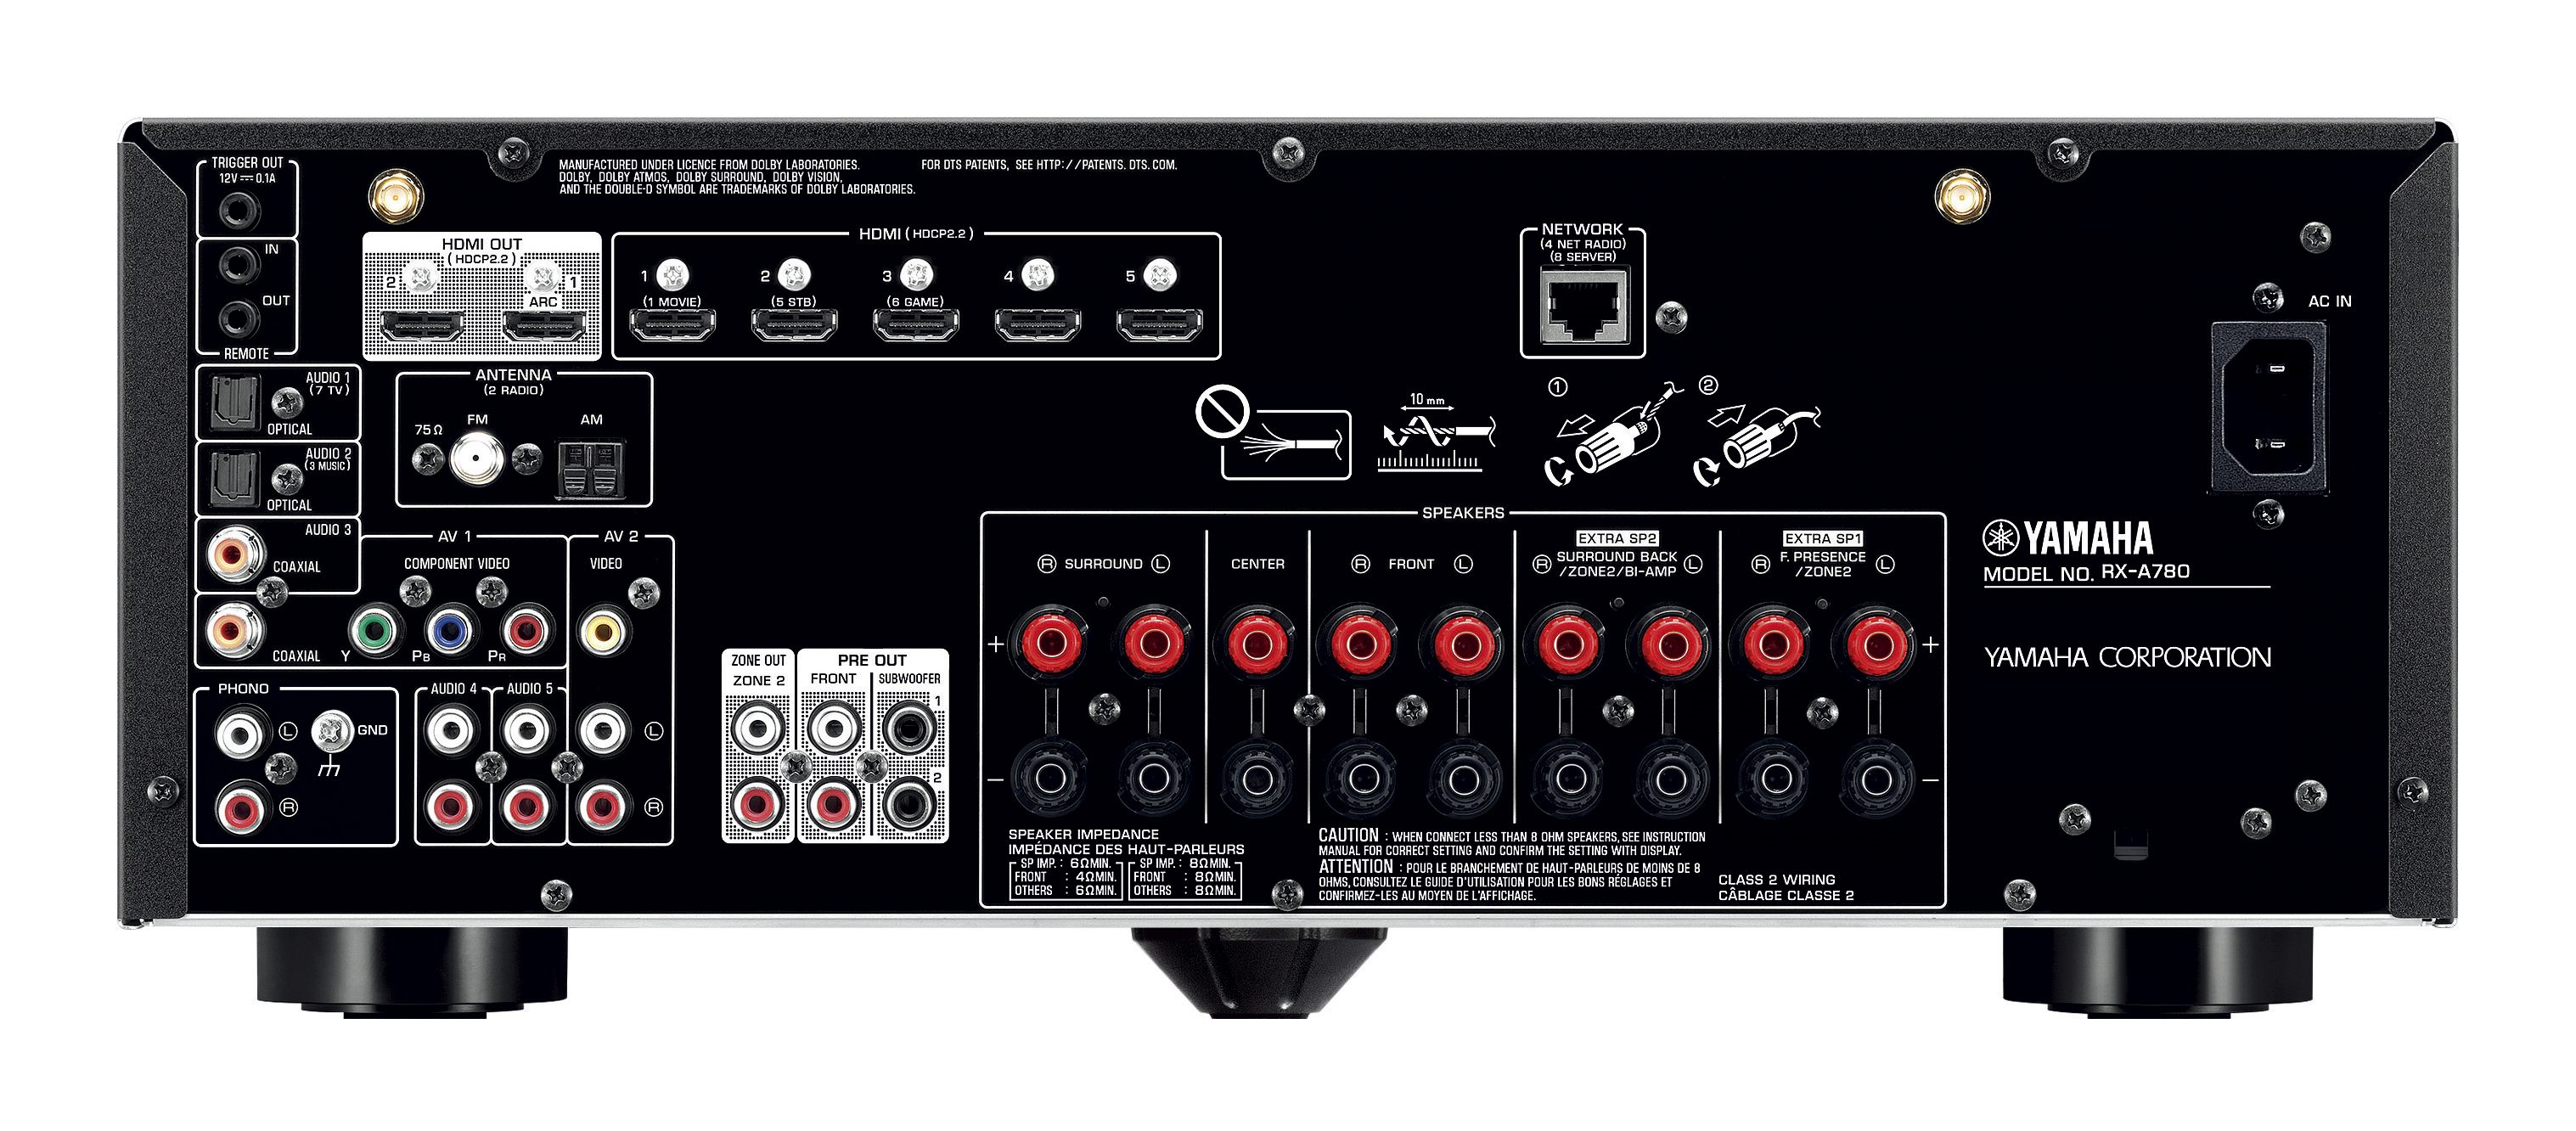 Rx A780 Specs Av Receivers Audio Visual Products